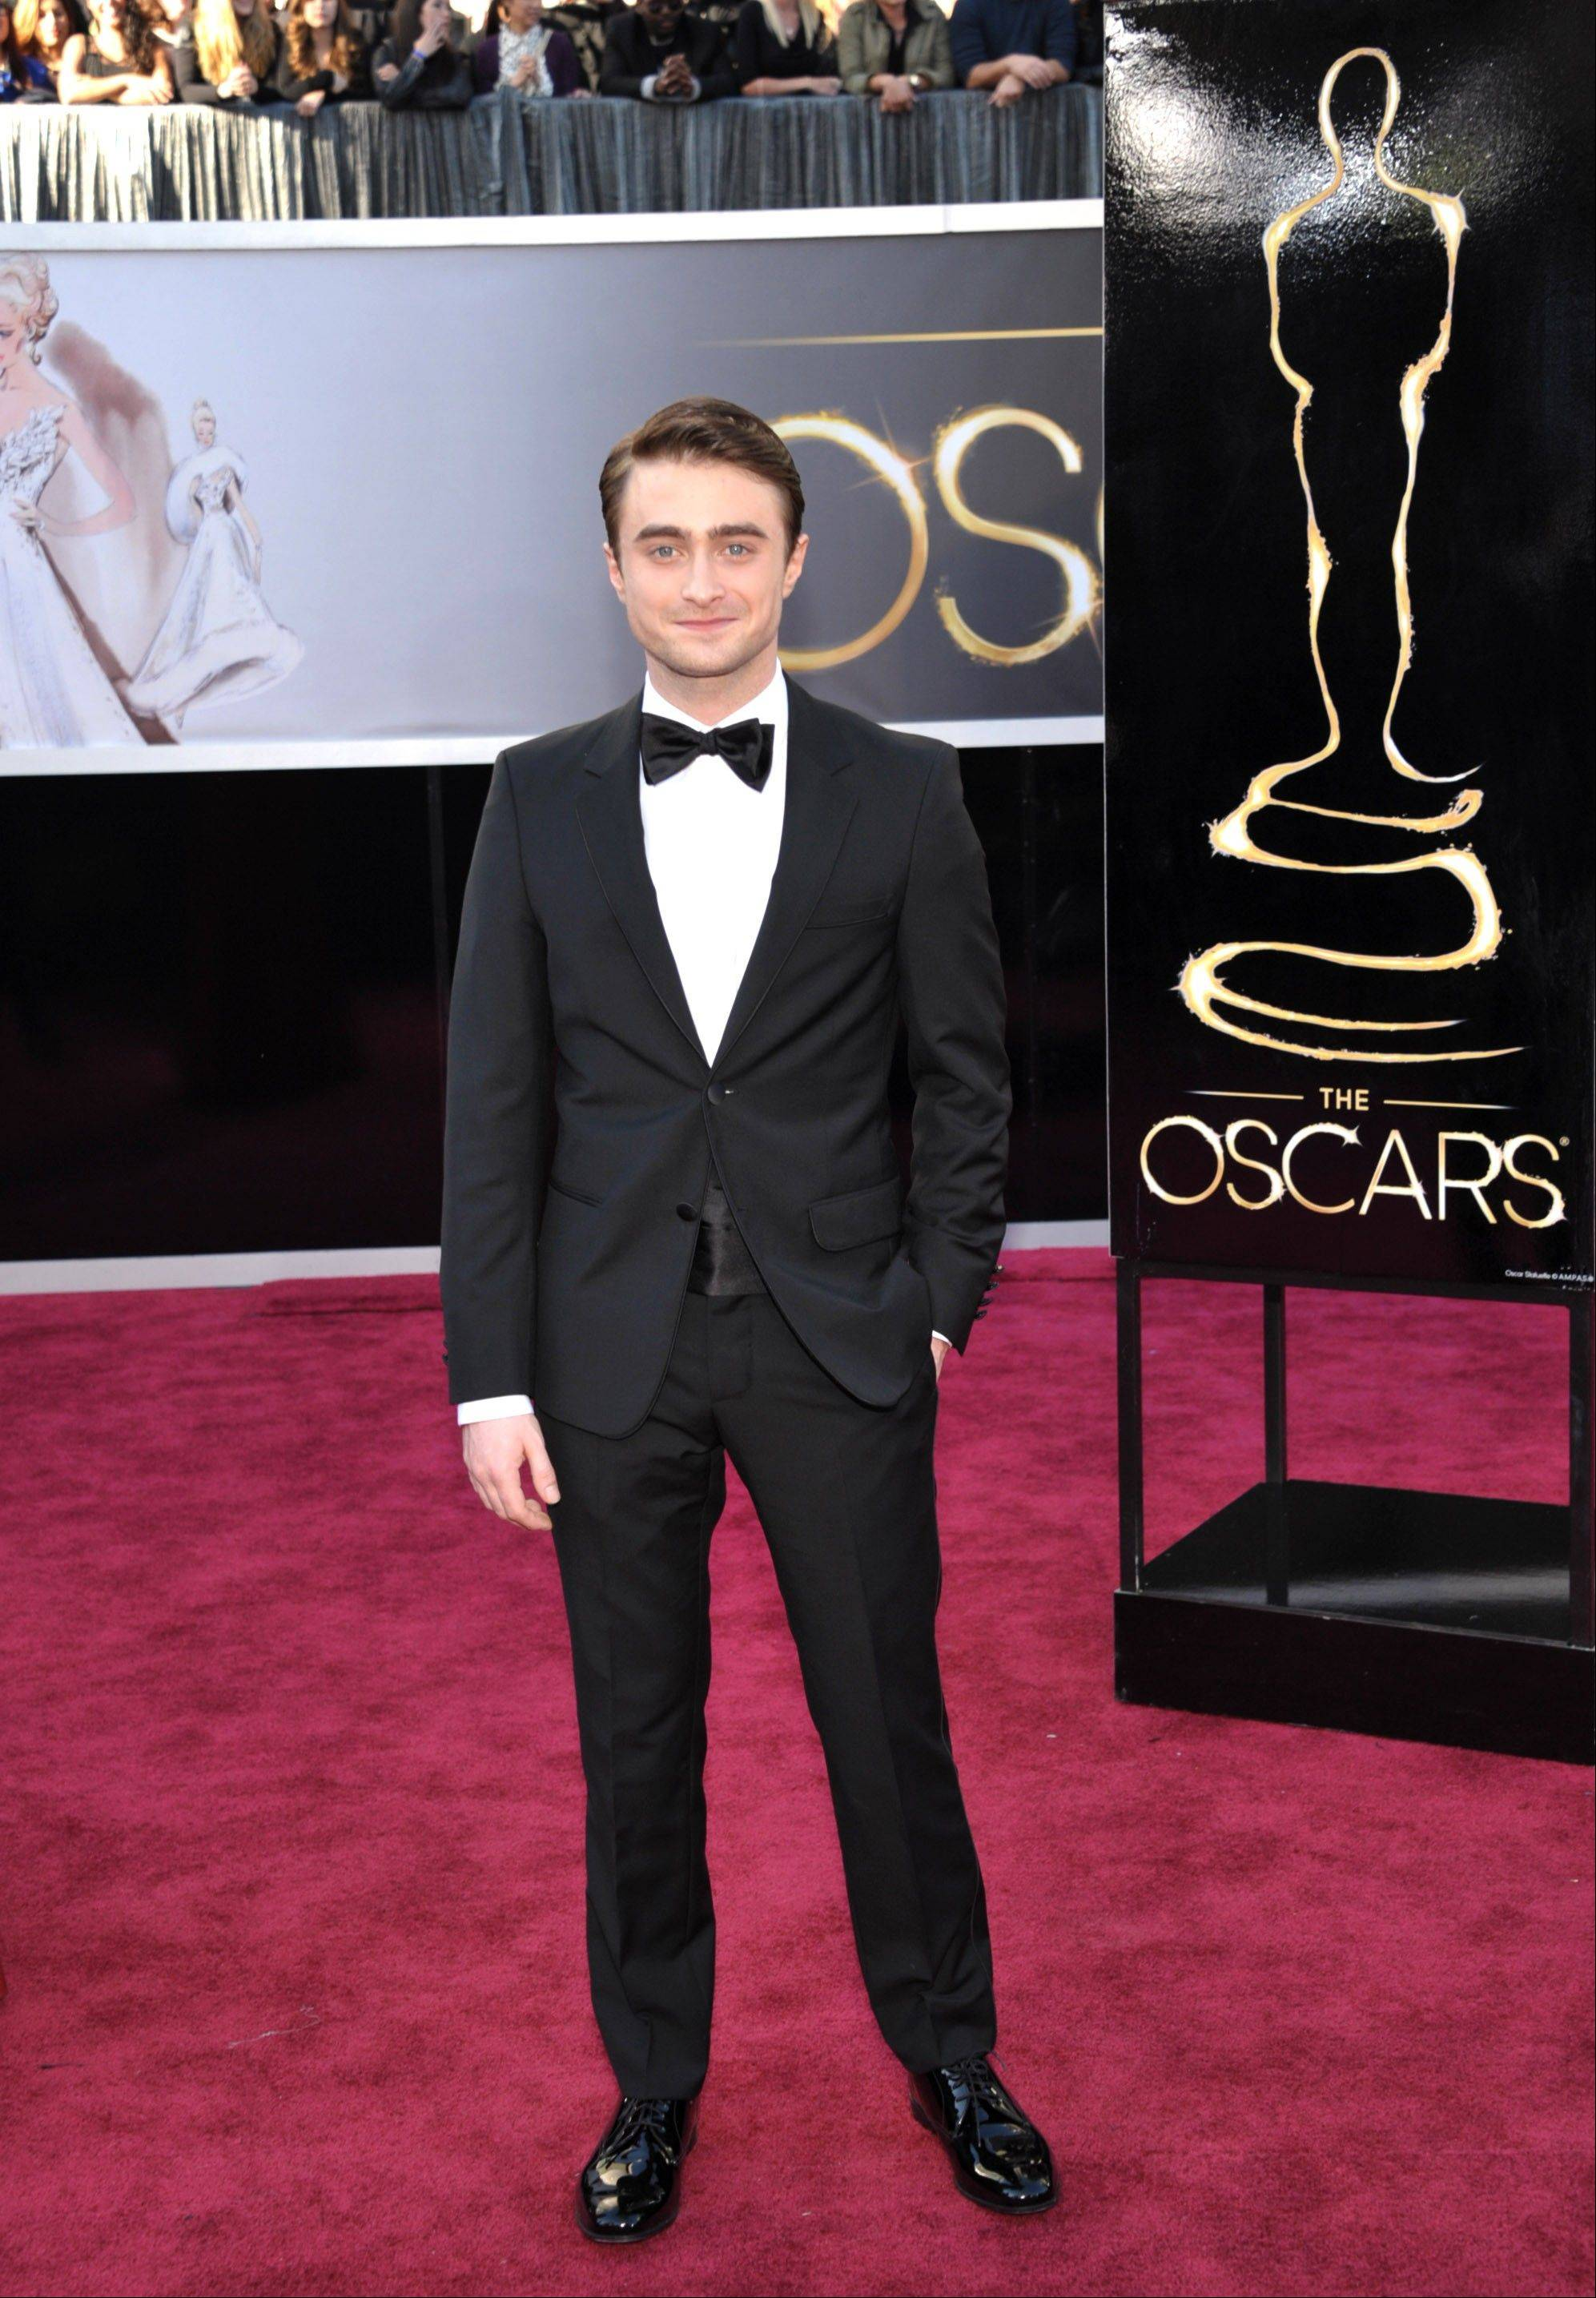 """Harry Potter"" star Daniel Radcliffe looks dapper on the red carpet."